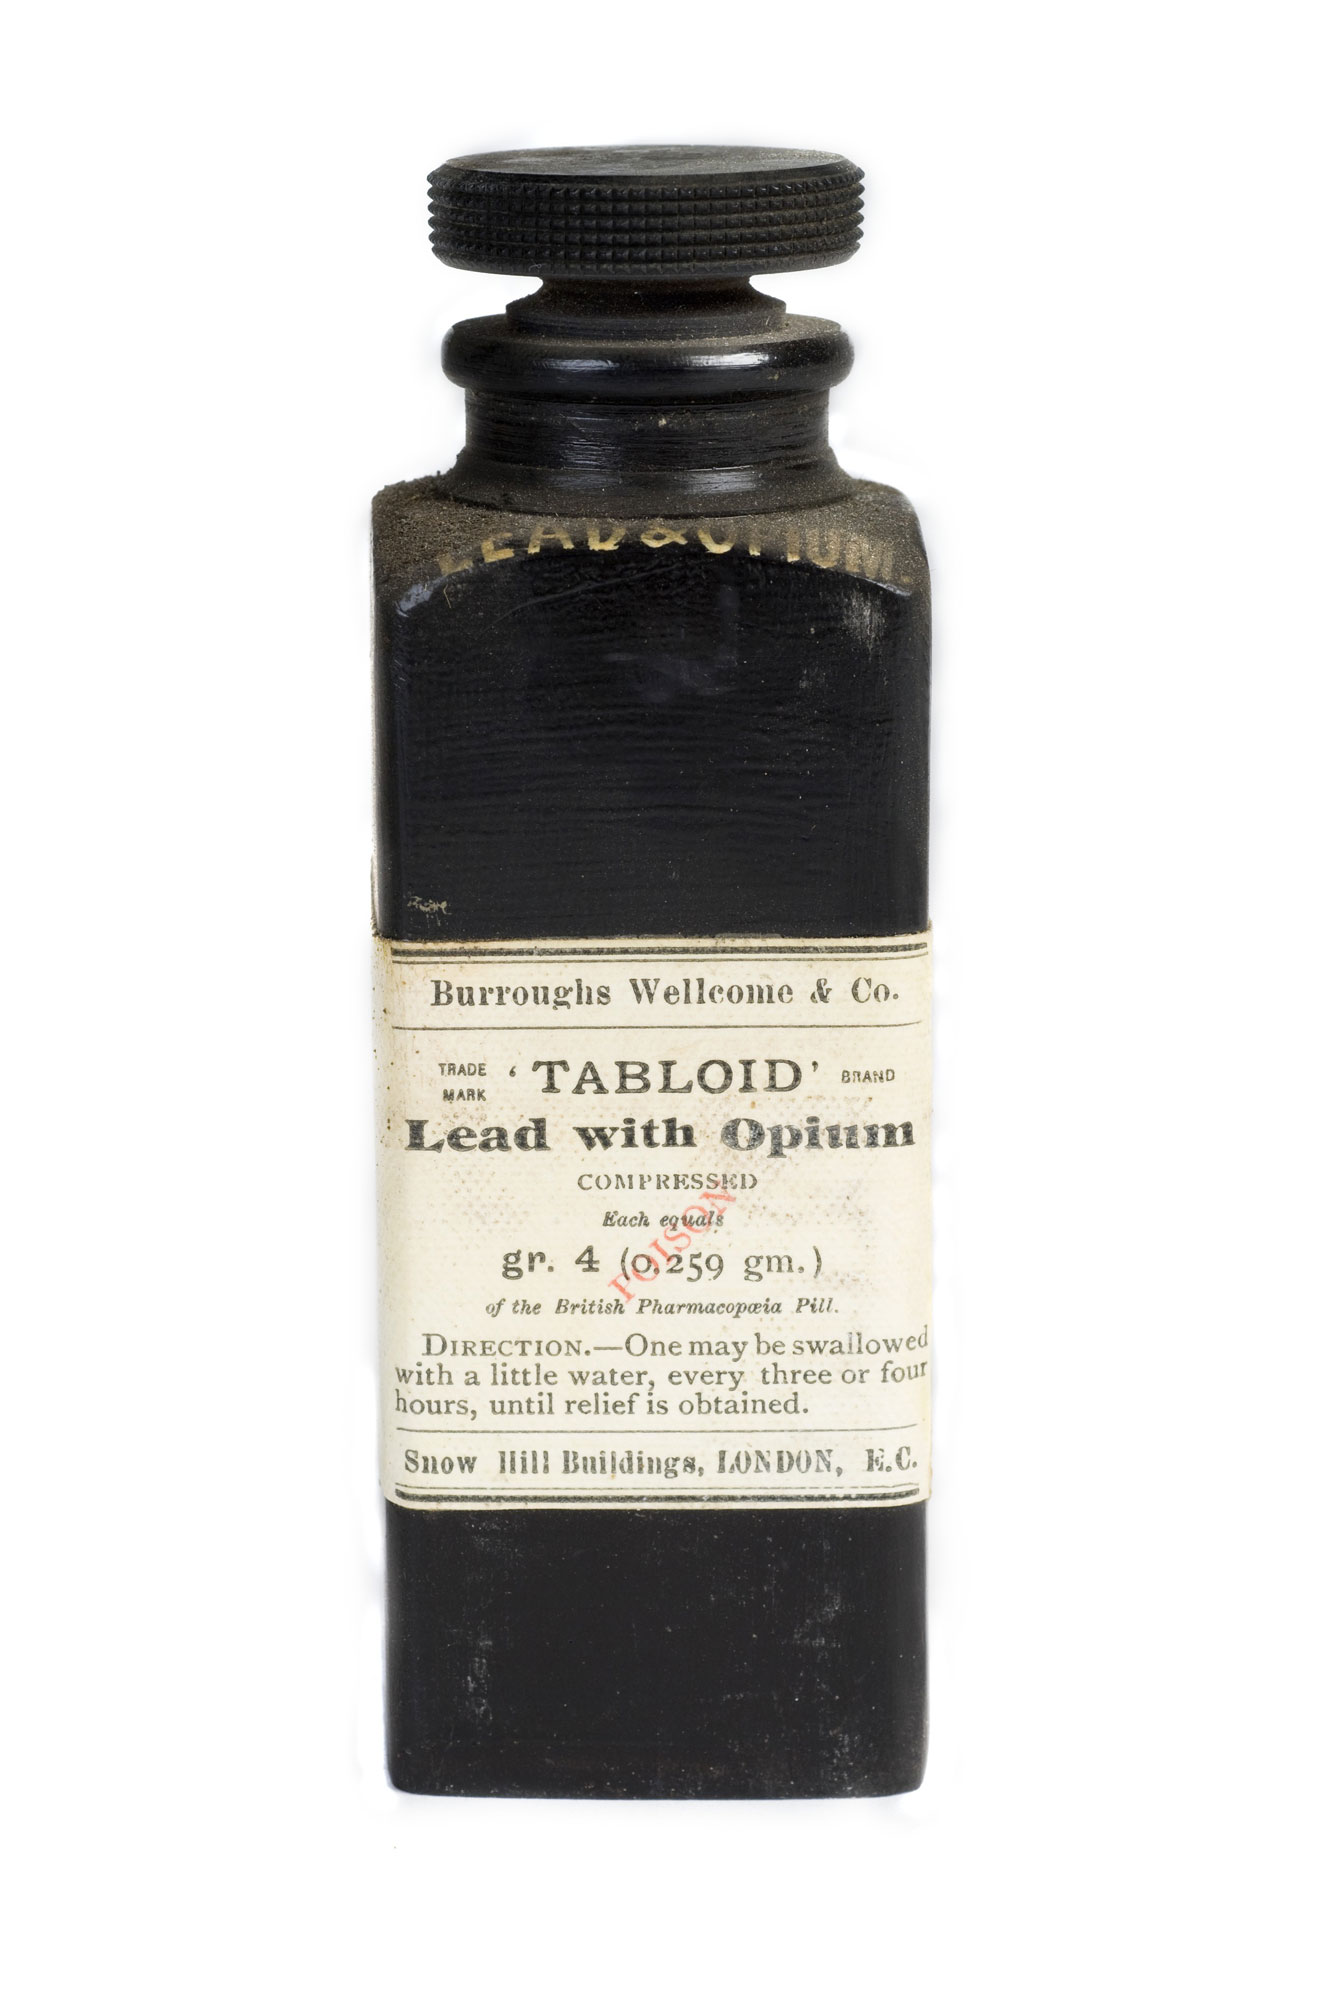 Bottle of 'Lead with Opium'